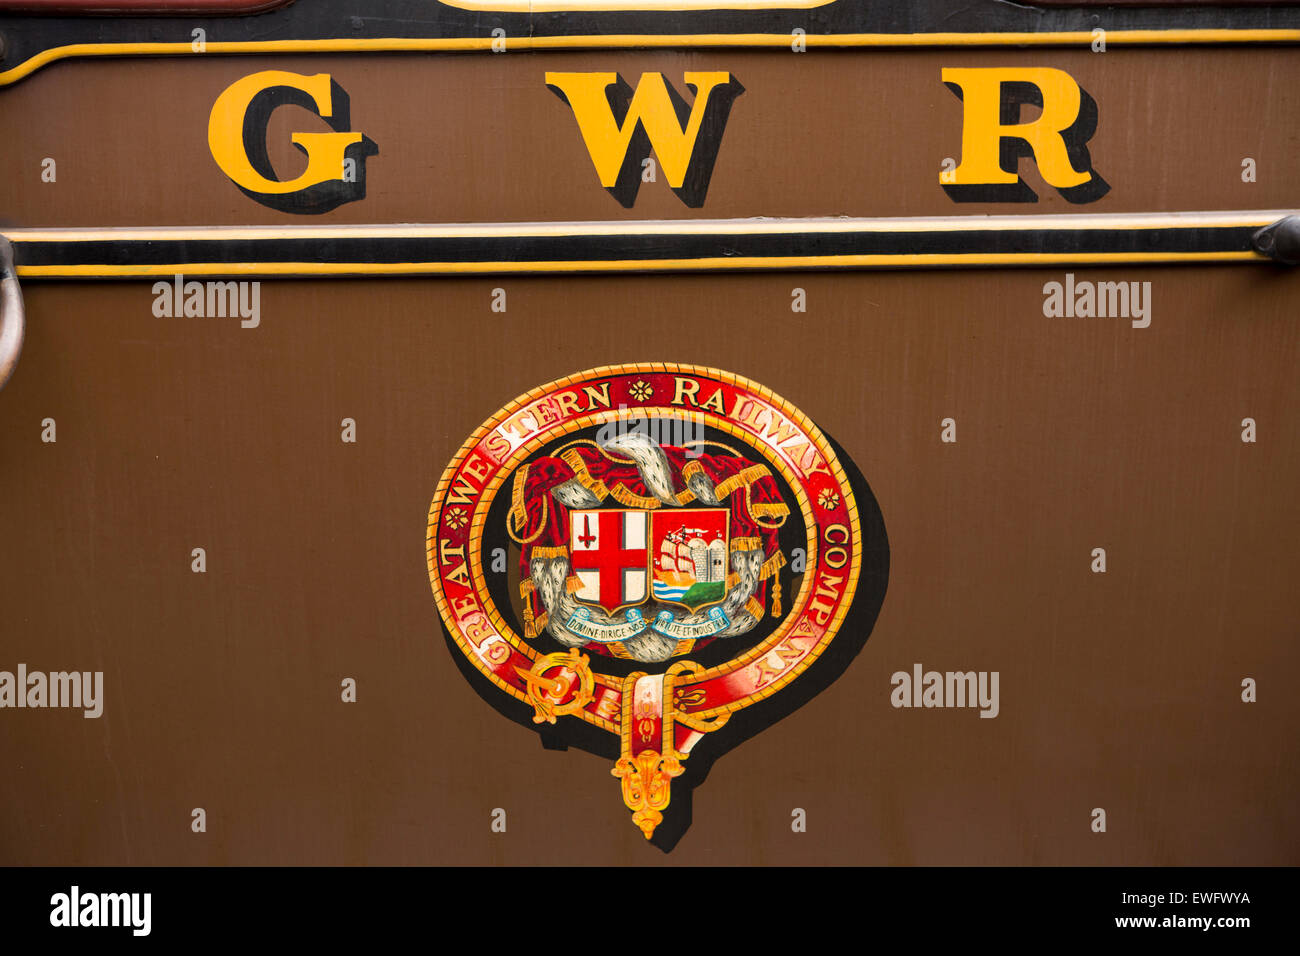 Great Western Railway Logo High Resolution Stock Photography And